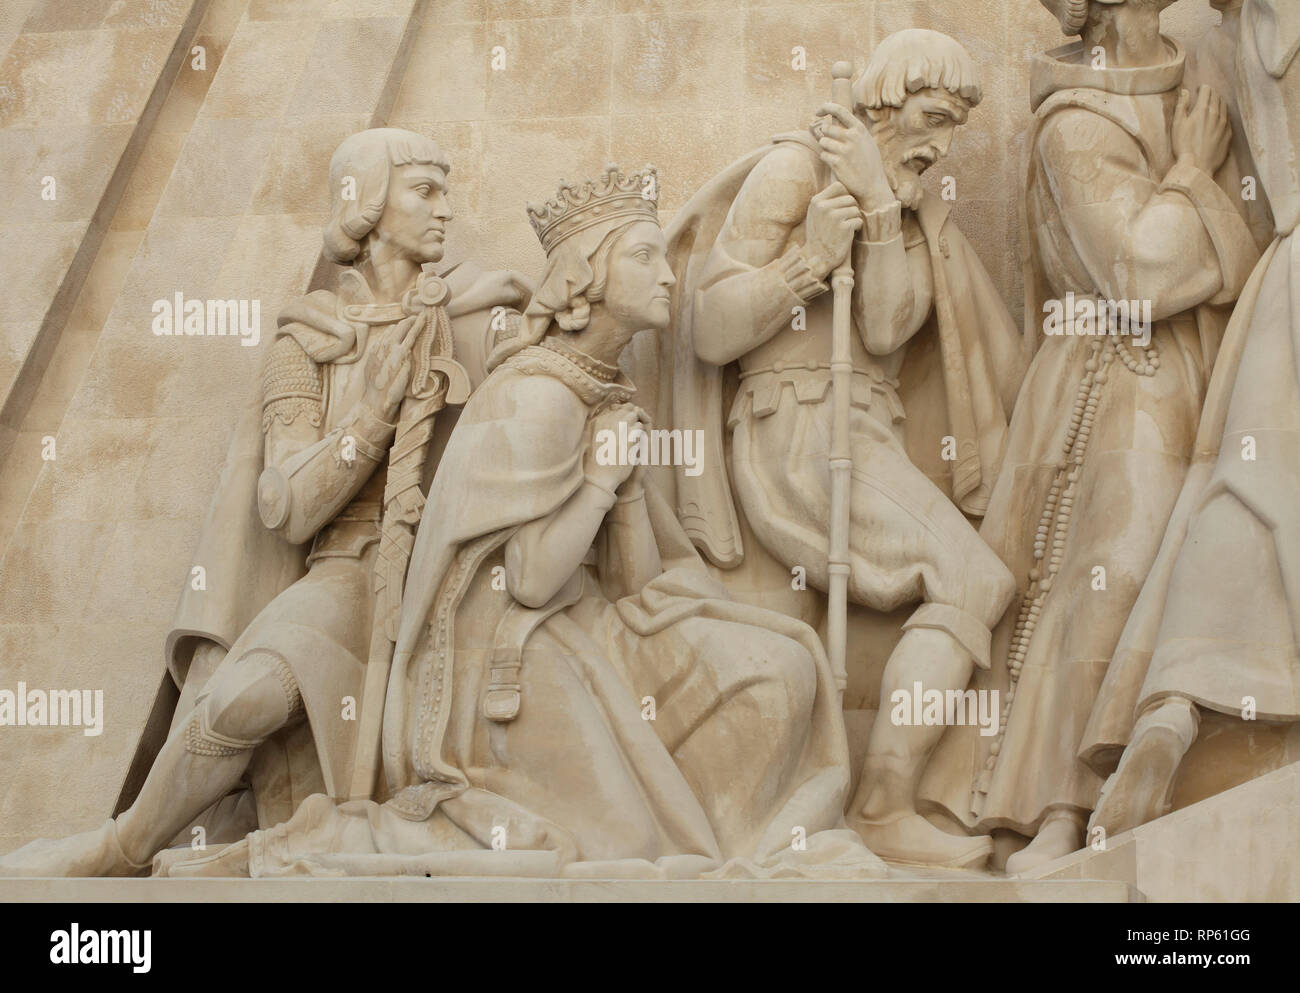 Duke Peter of Coimbra with his mother Queen Philippa of Lancaster and Portuguese explorer and writer Fernão Mendes Pinto (depicted from left to right) on the Monument of the Discoveries (Padrão dos Descobrimentos) designed by Portuguese sculptor Leopoldo de Almeida (1960) on the bank of the Tagus River in Belém district in Lisbon, Portugal. - Stock Image